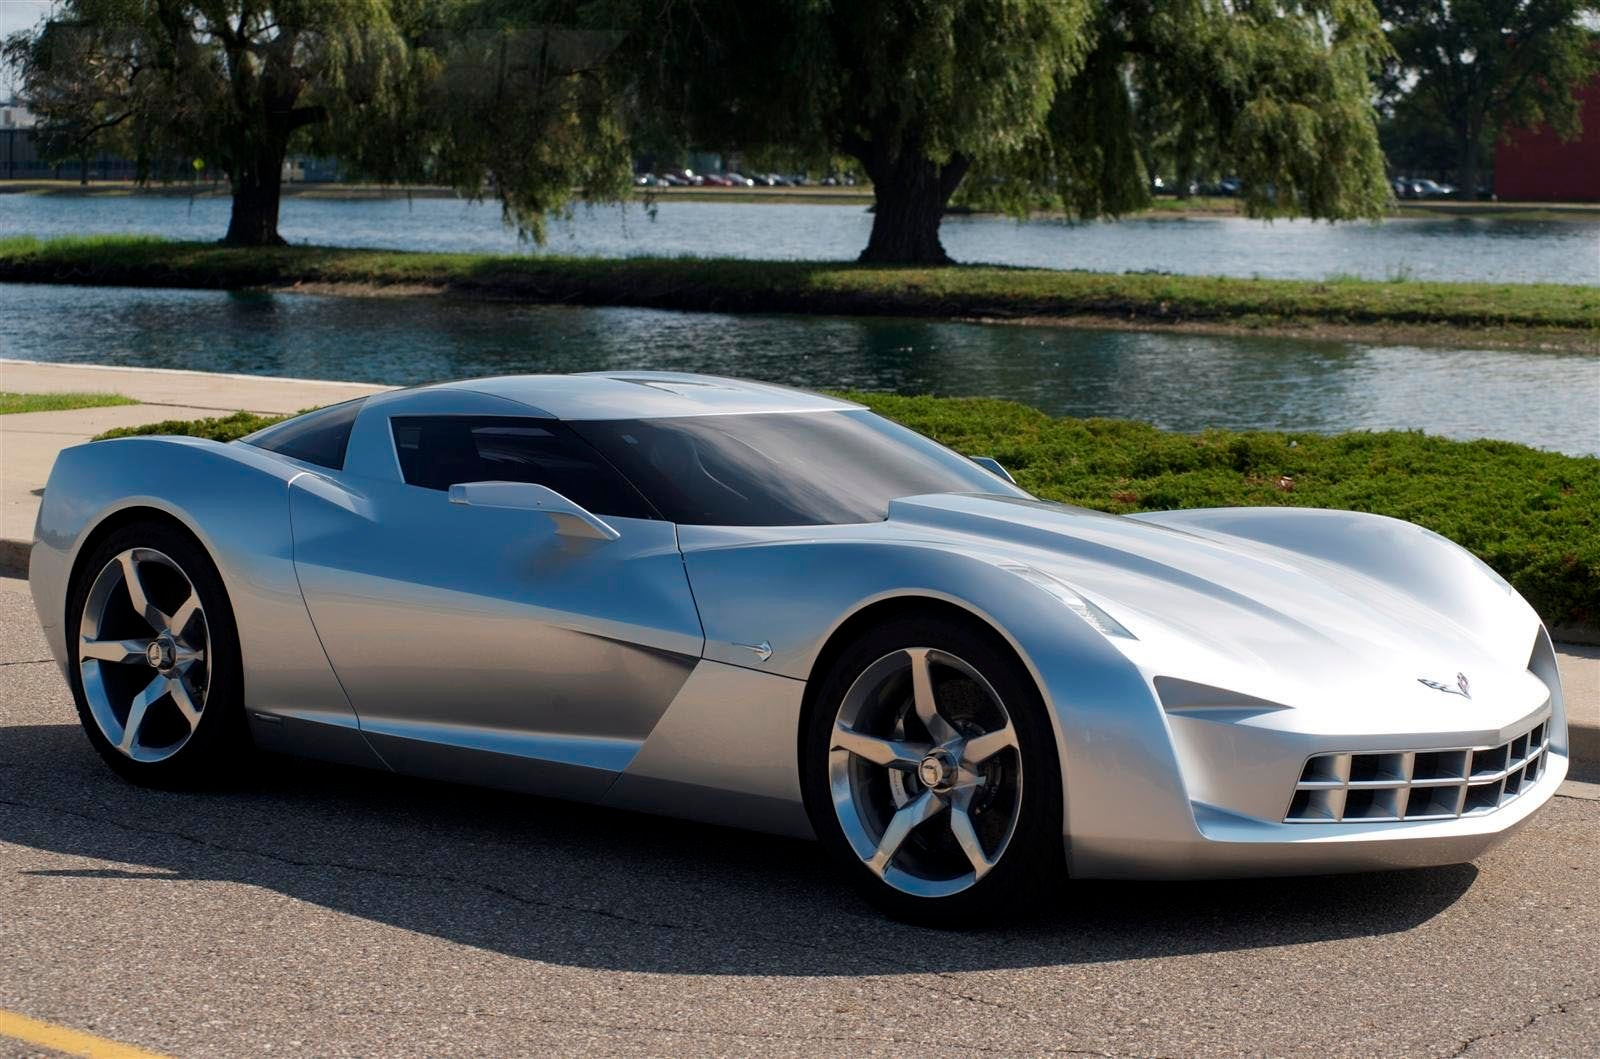 50th anniversary corvette stingray concept a prototype developed to make a singular tribute to the corvette stingray racer concept car created in 1959